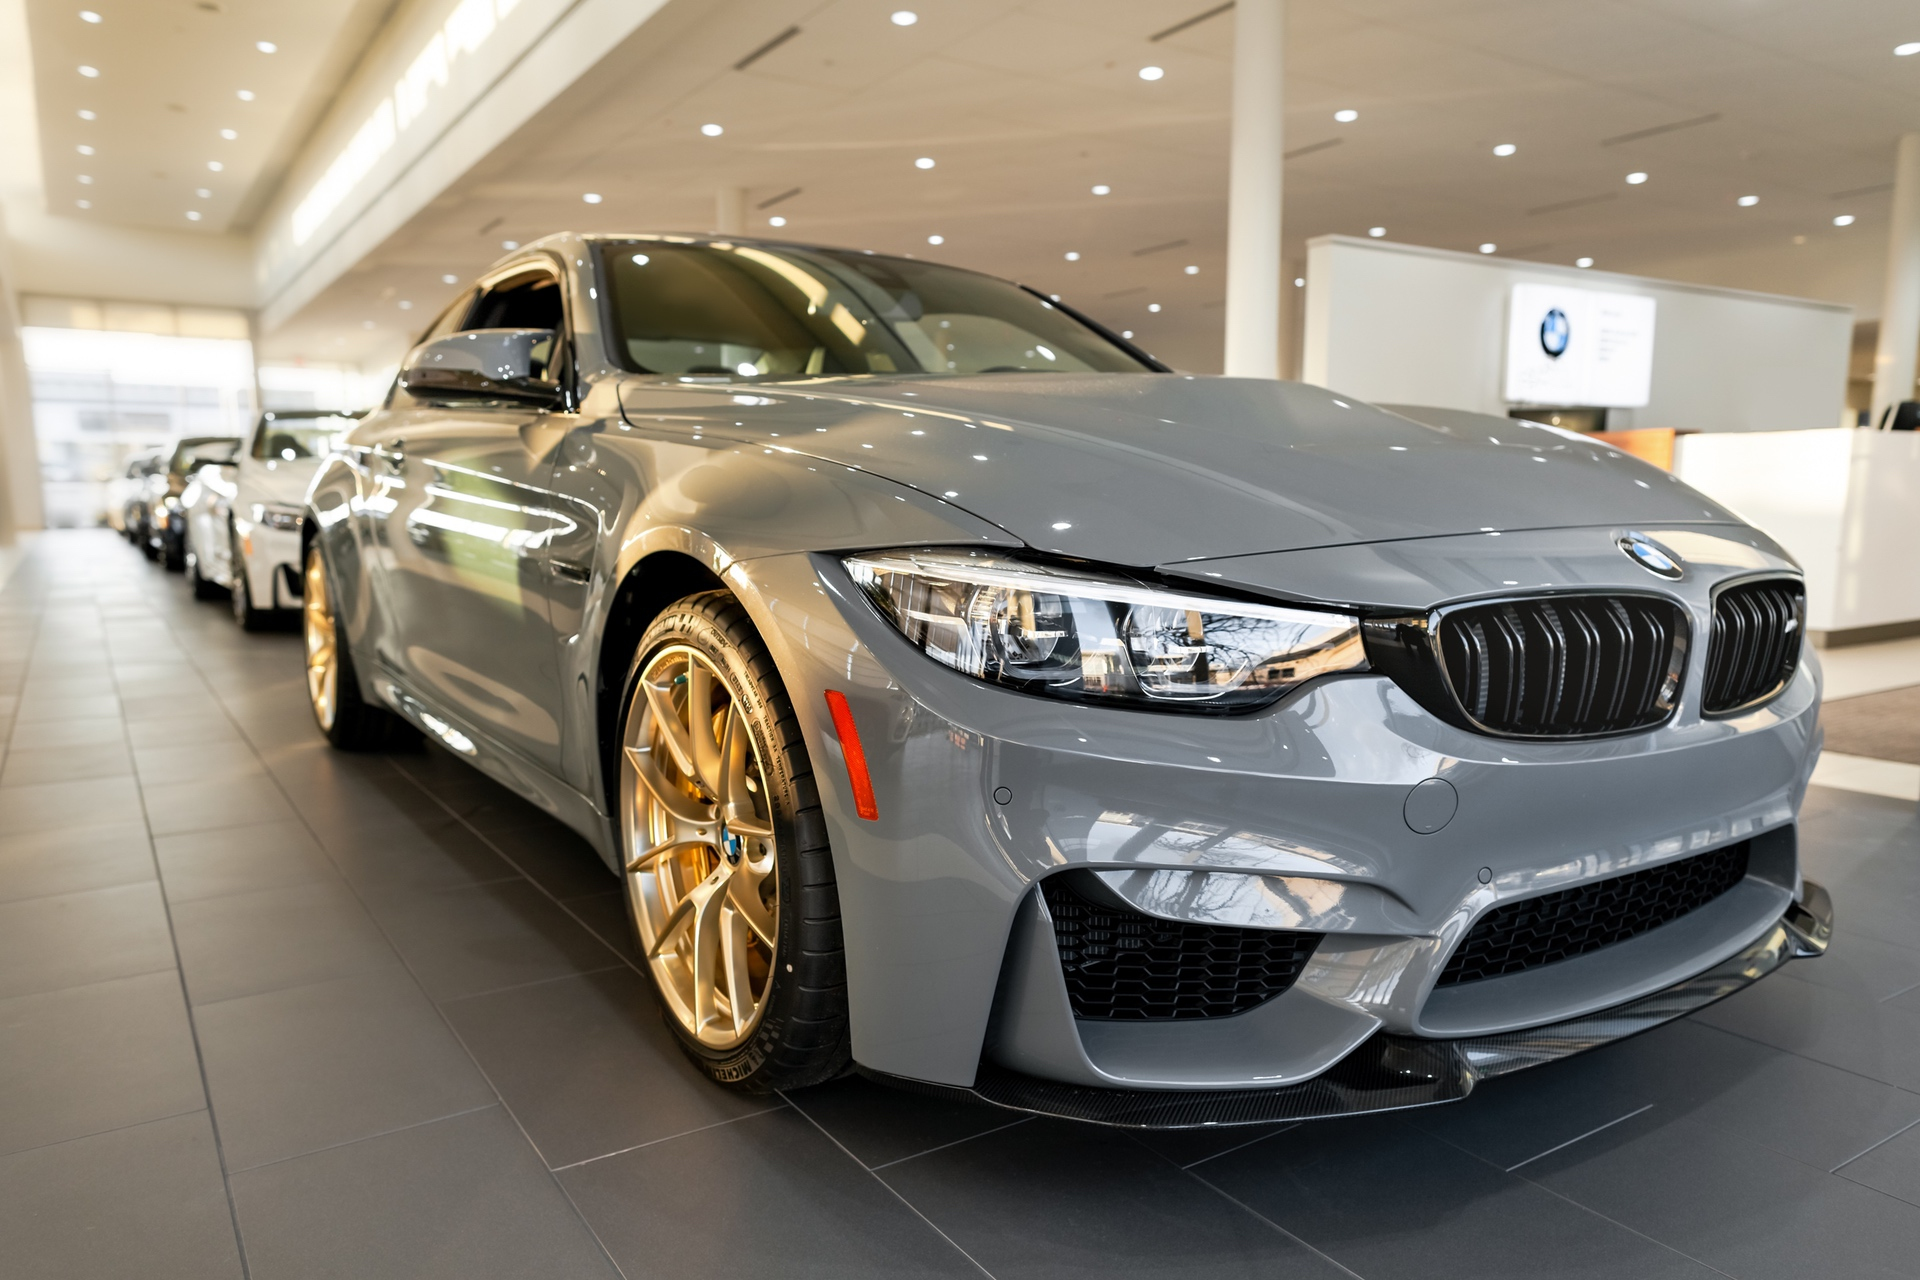 2019 Bmw M4 Cs Models Are Still Available To Purchase